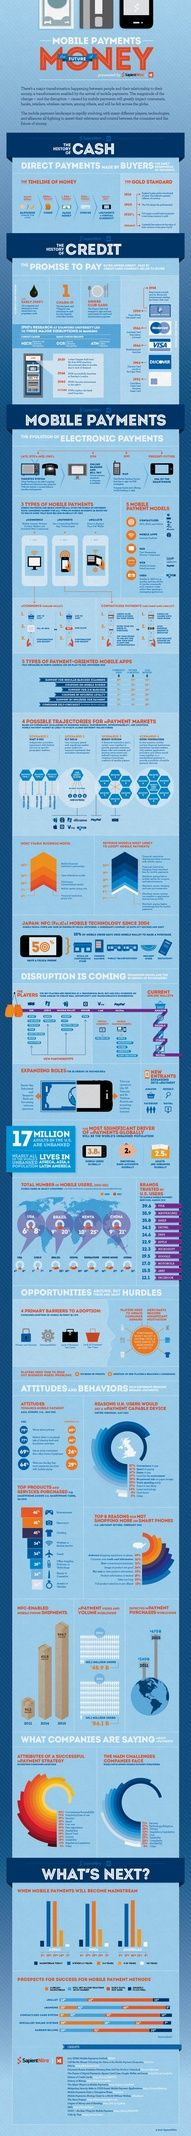 The Future of Money and Mobile Commerce. #infografia #infographic